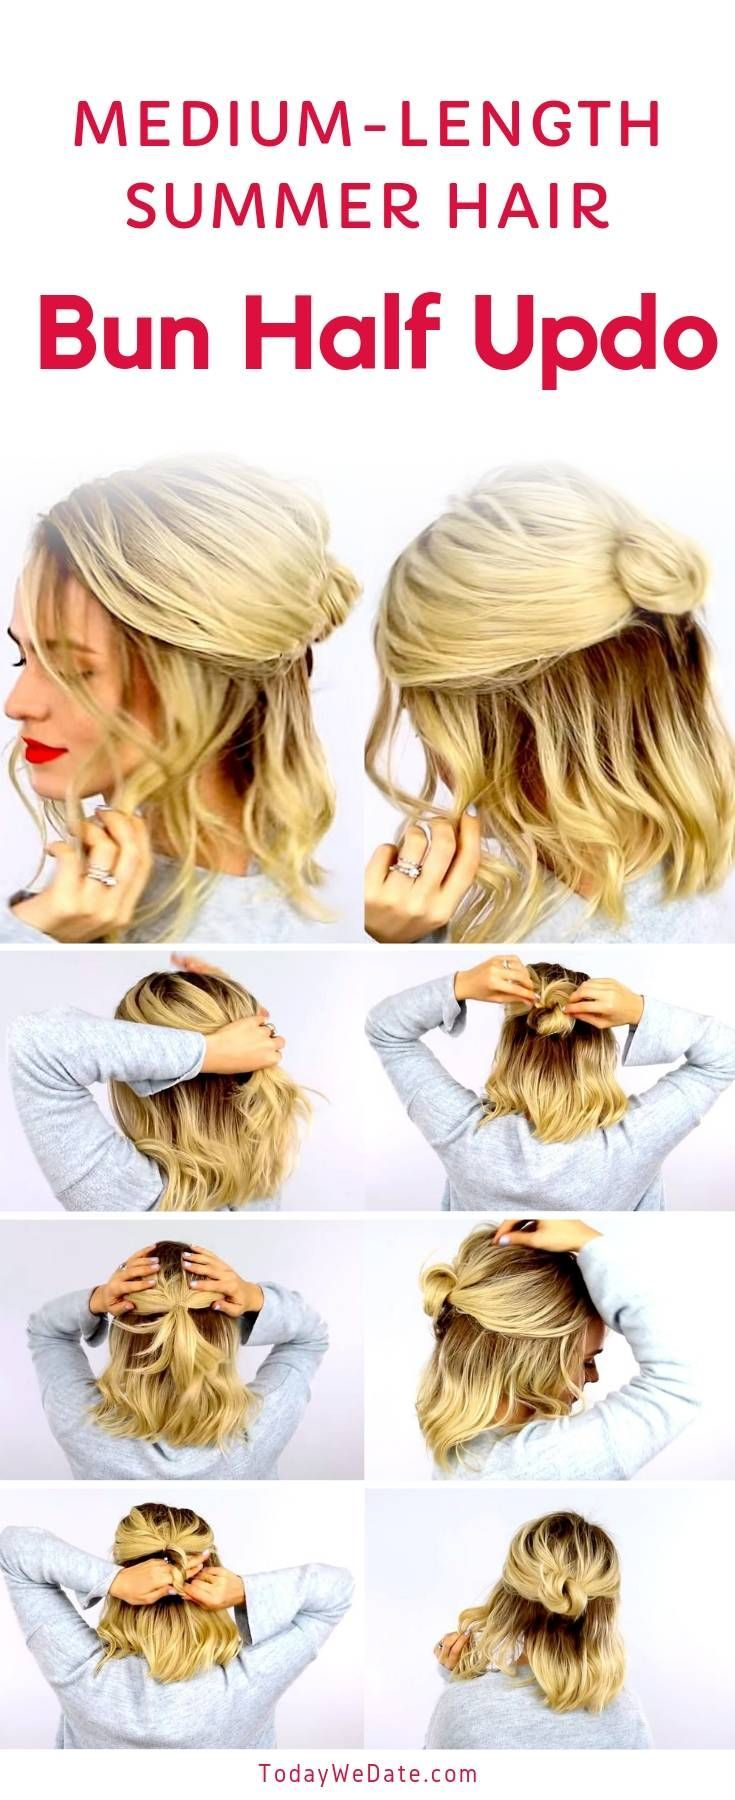 11 No-heat Easy Summer Hairstyles Anyone Can Pull Off In 11 Minutes